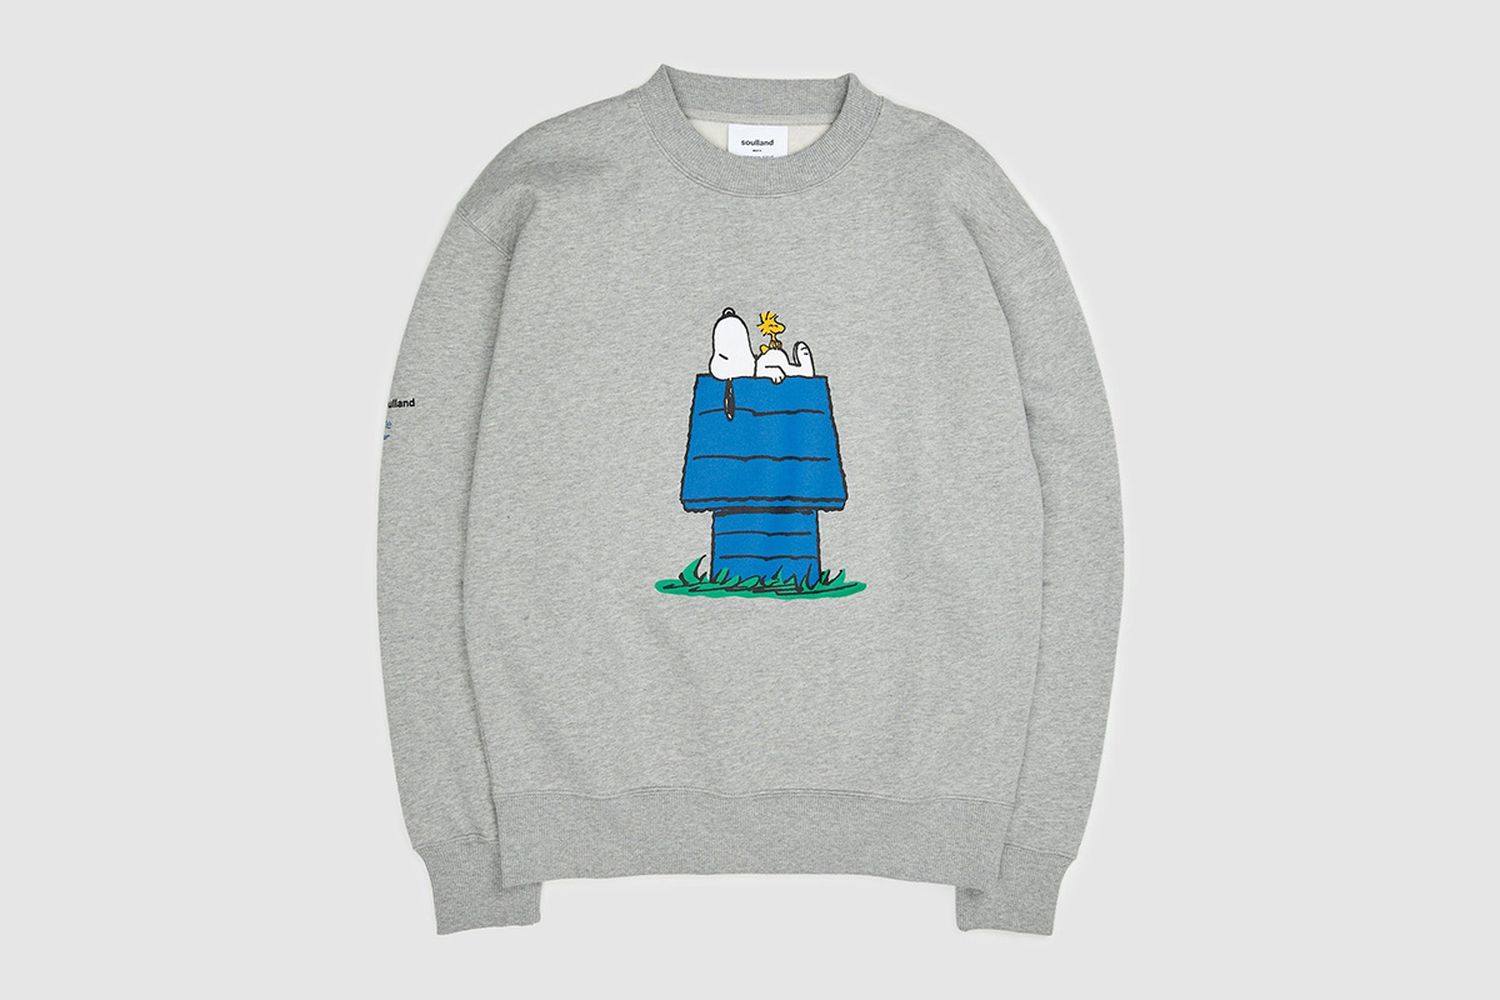 Snoopy Bed Crewneck